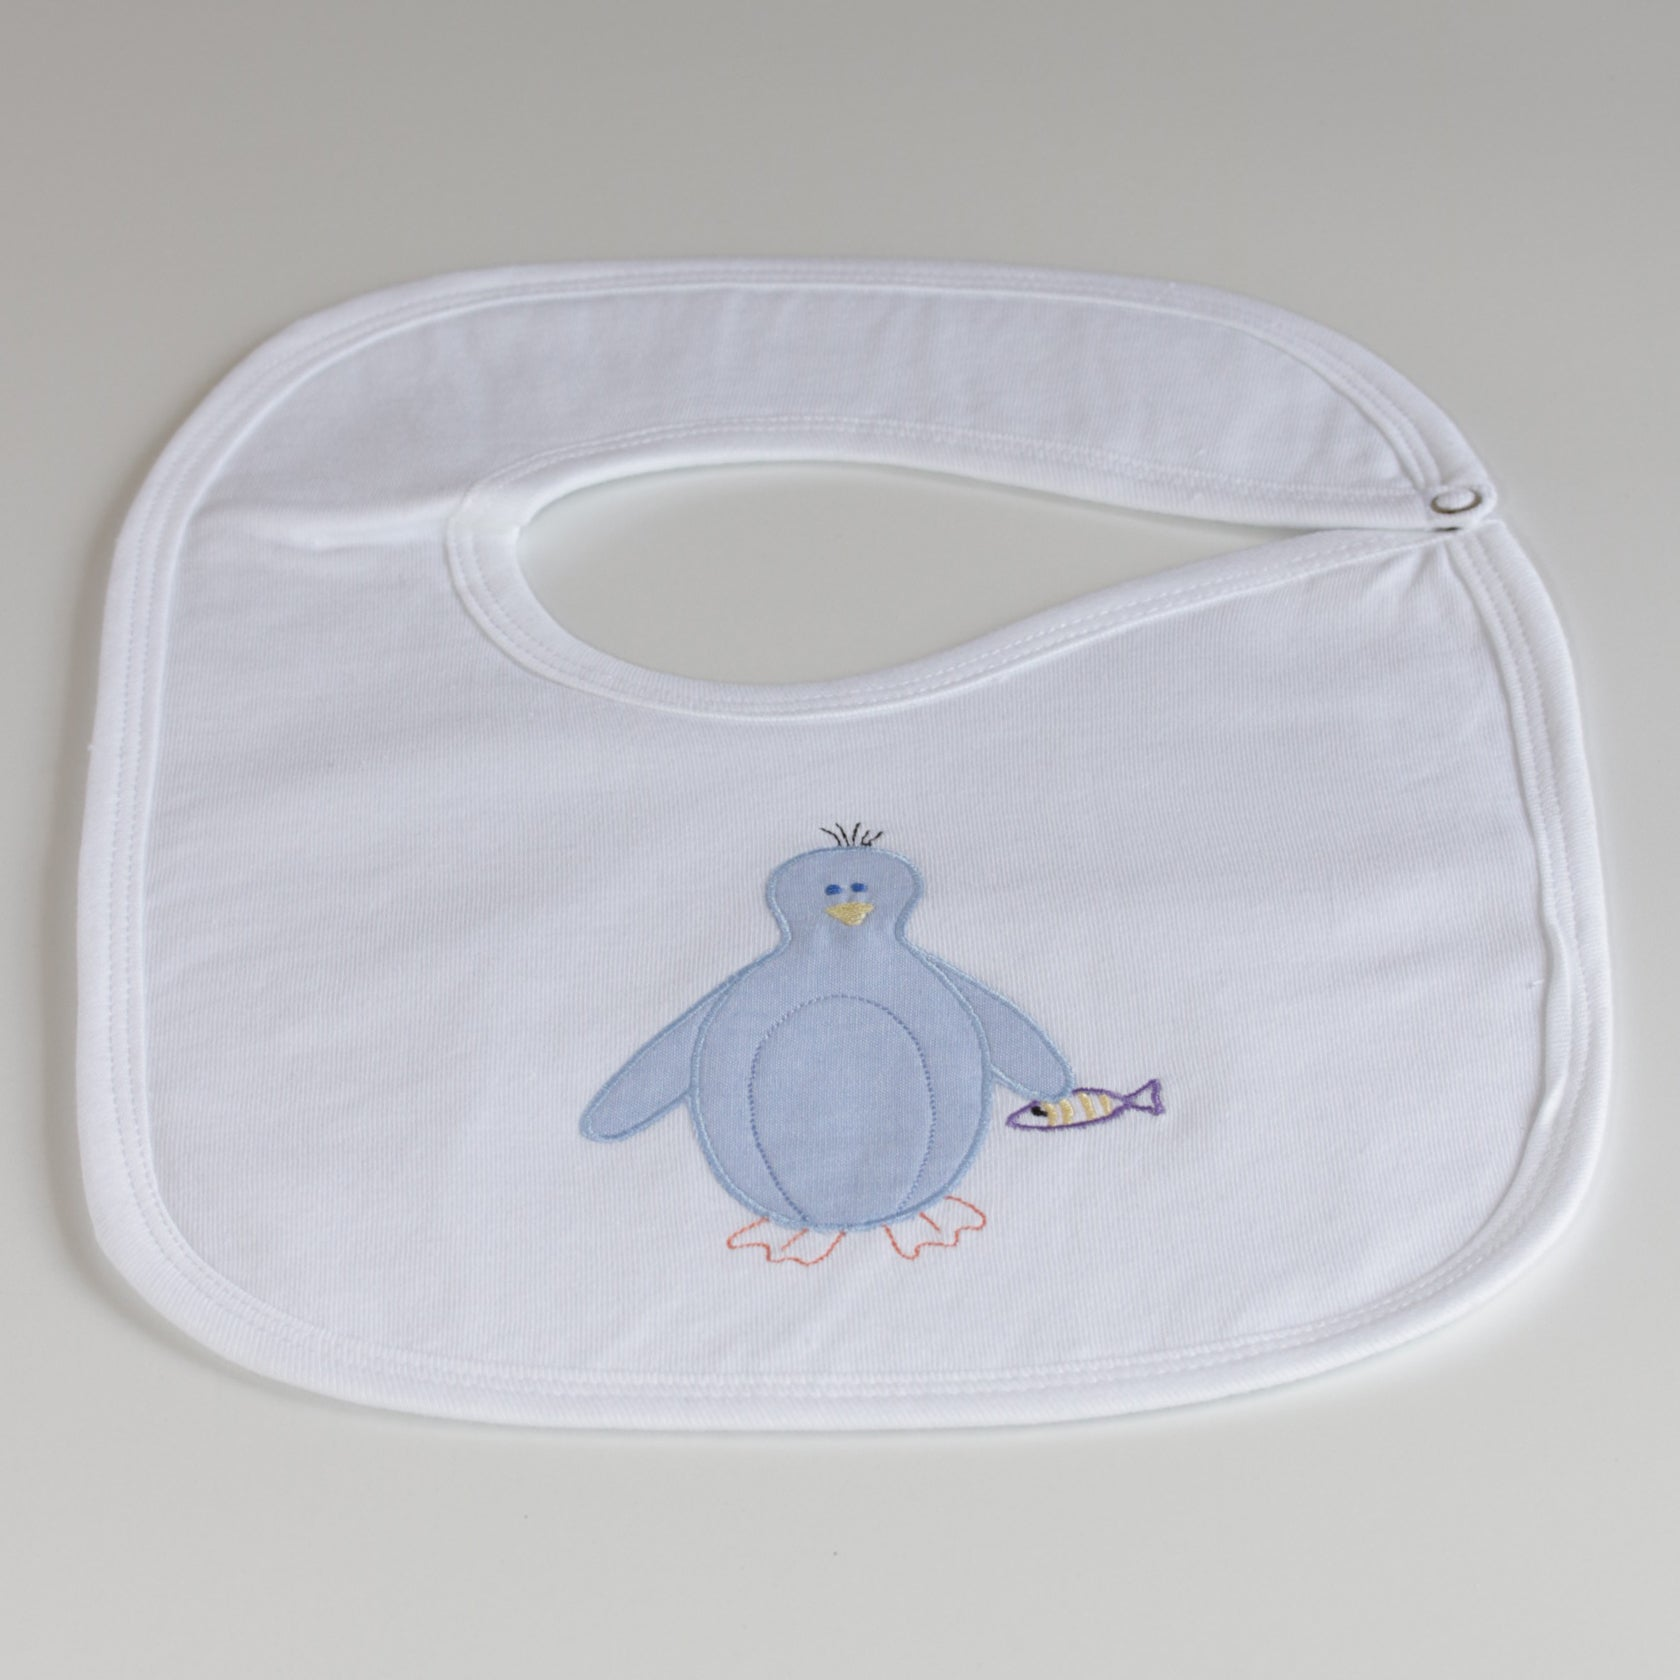 Nocturnal Affair White Bib - Penguin